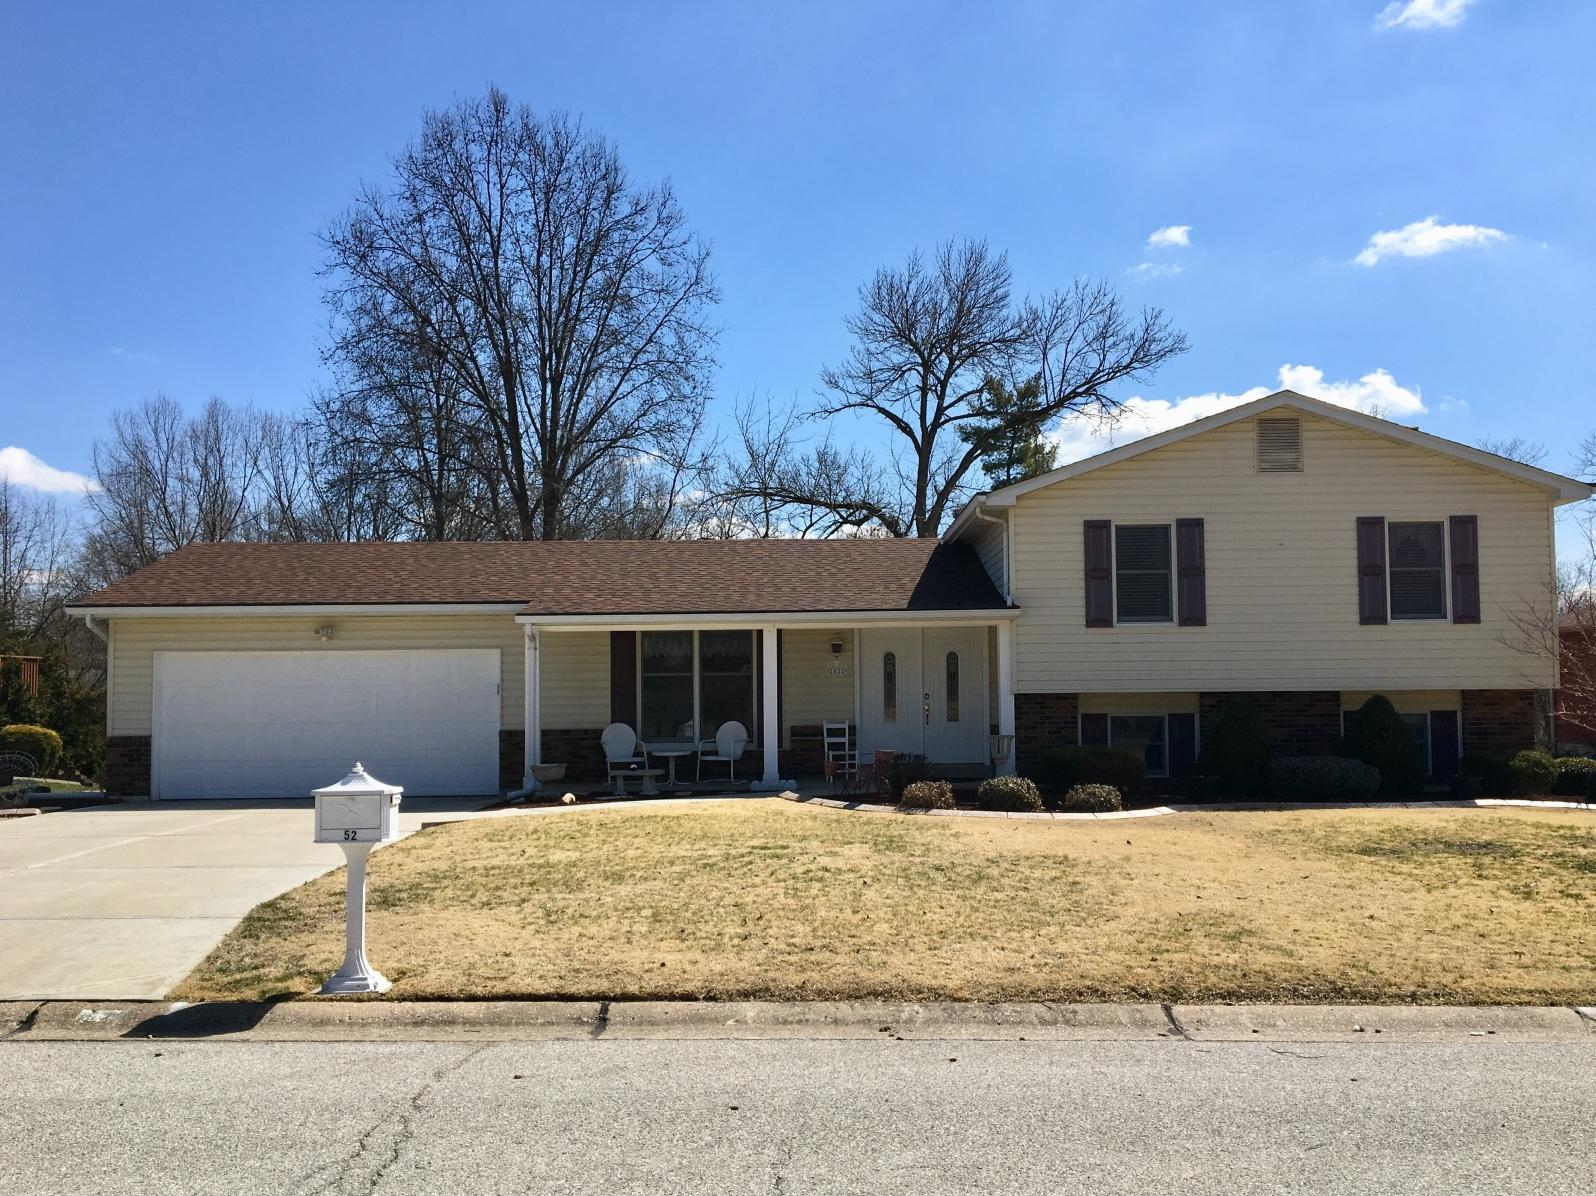 Photo of 52 Weatherby Dr Saint Peters MO 63376